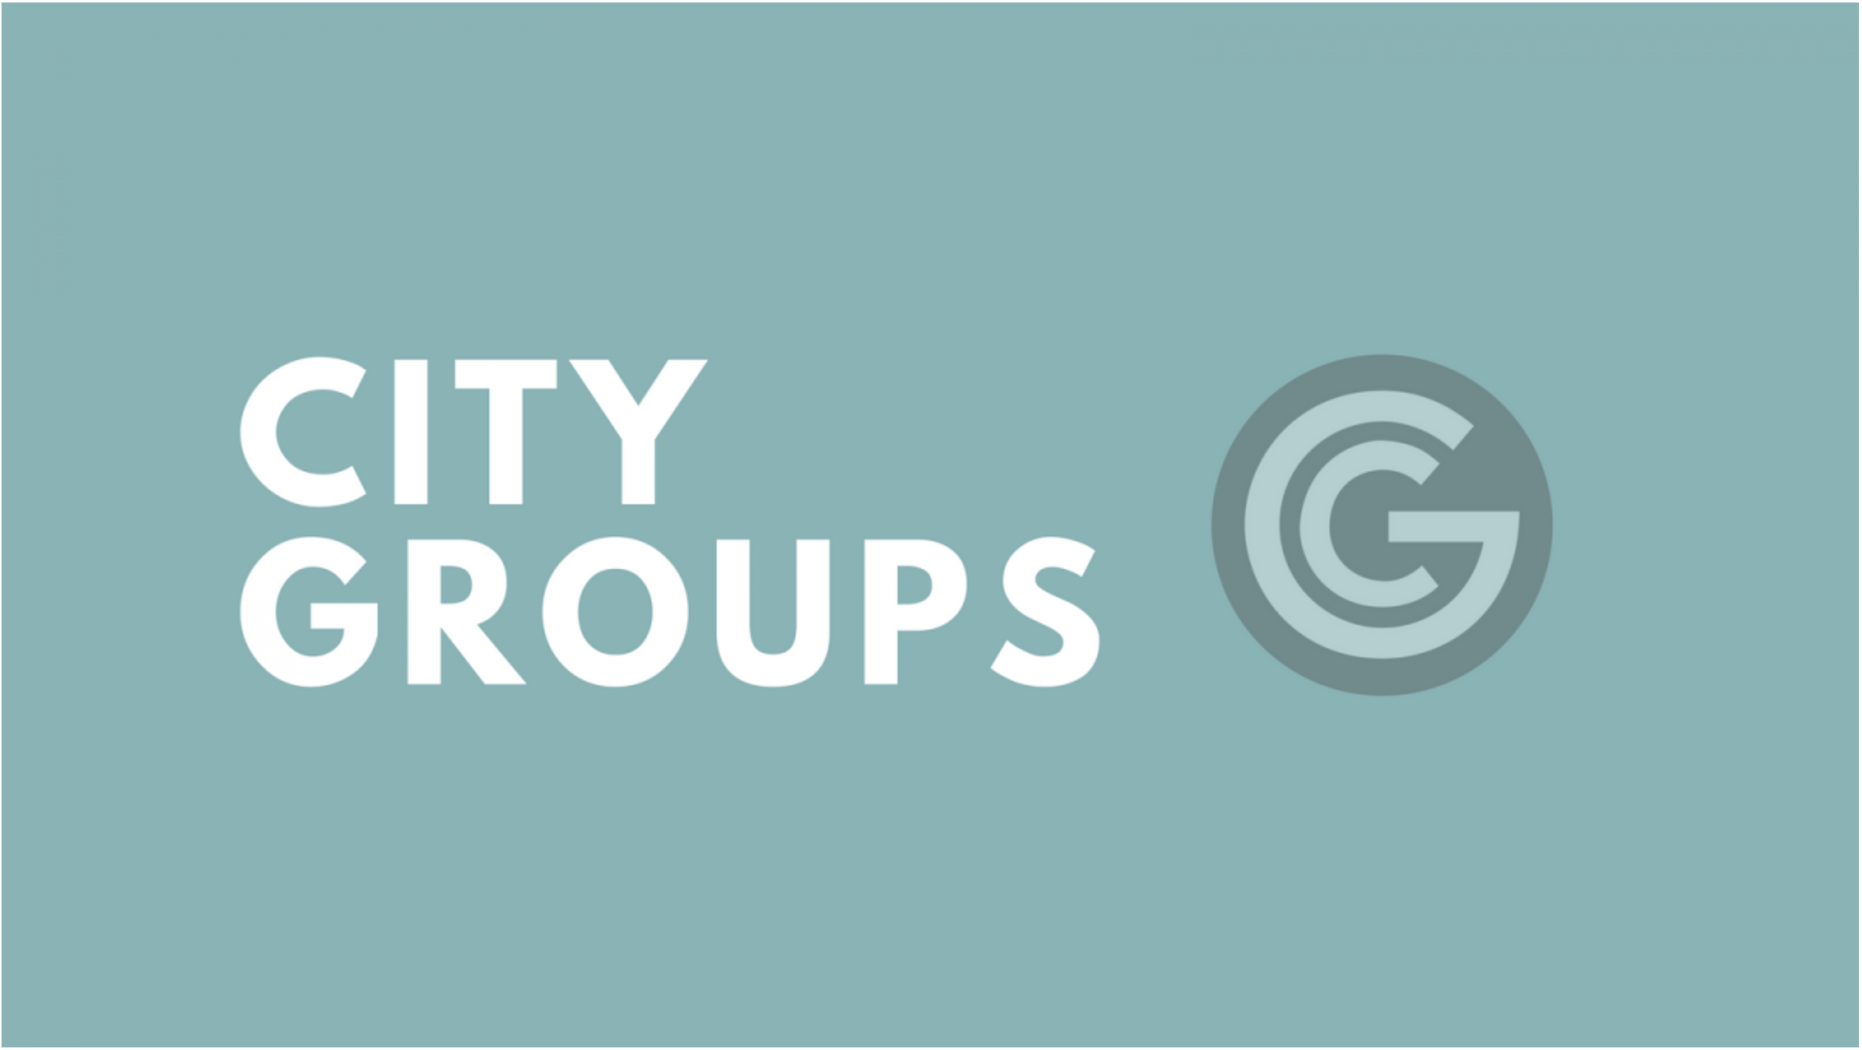 City groups graphic